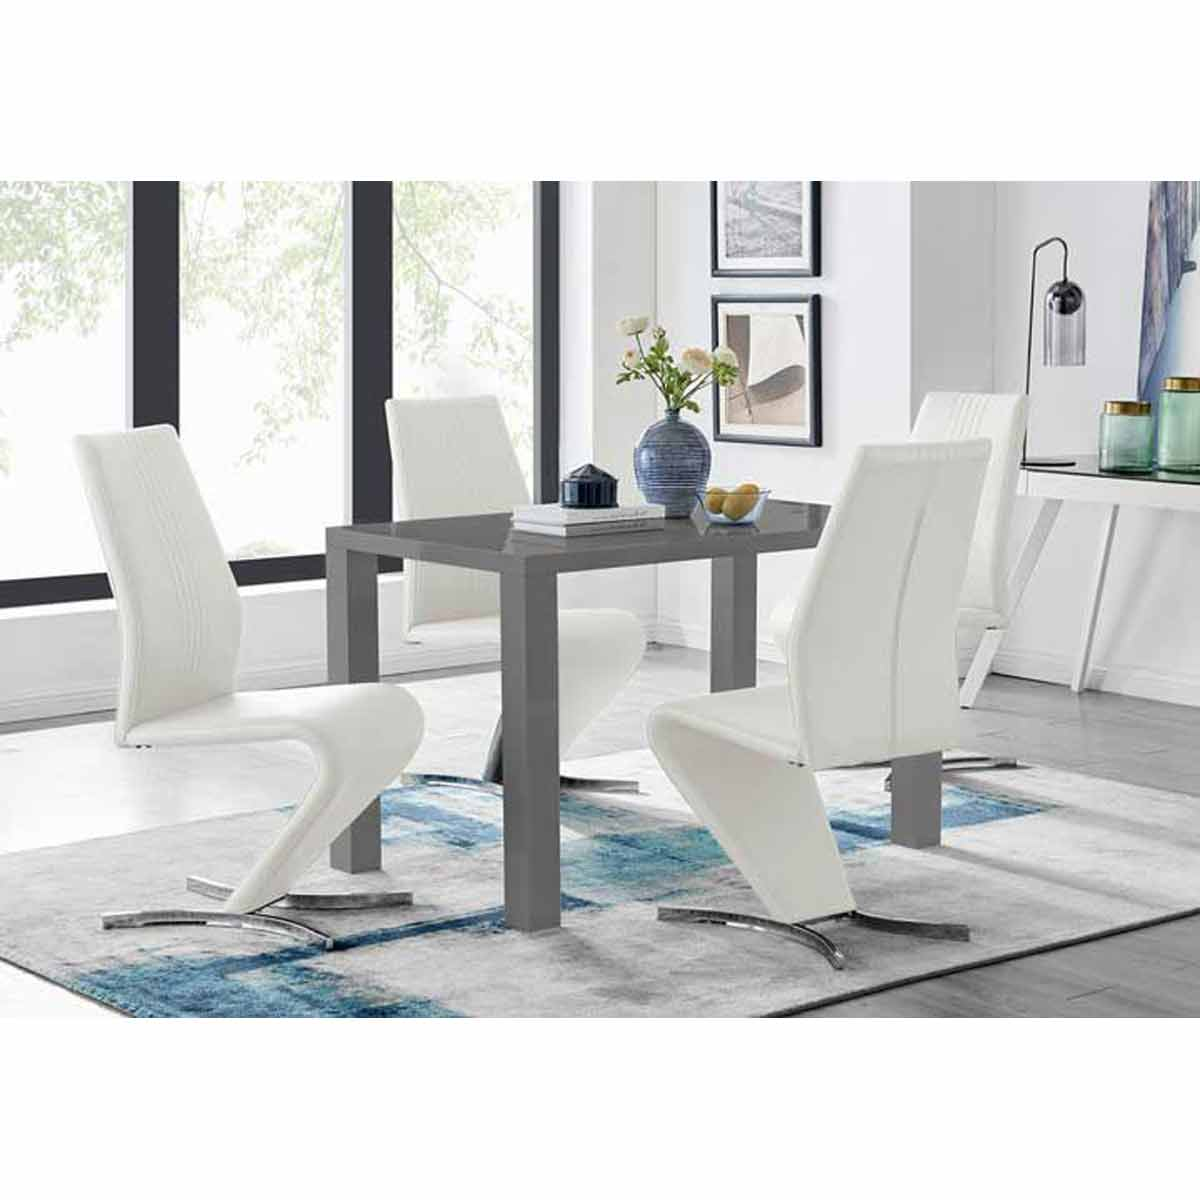 Furniture Box Pivero Grey High Gloss Dining Table and 4 Luxury White Willow Chairs Set